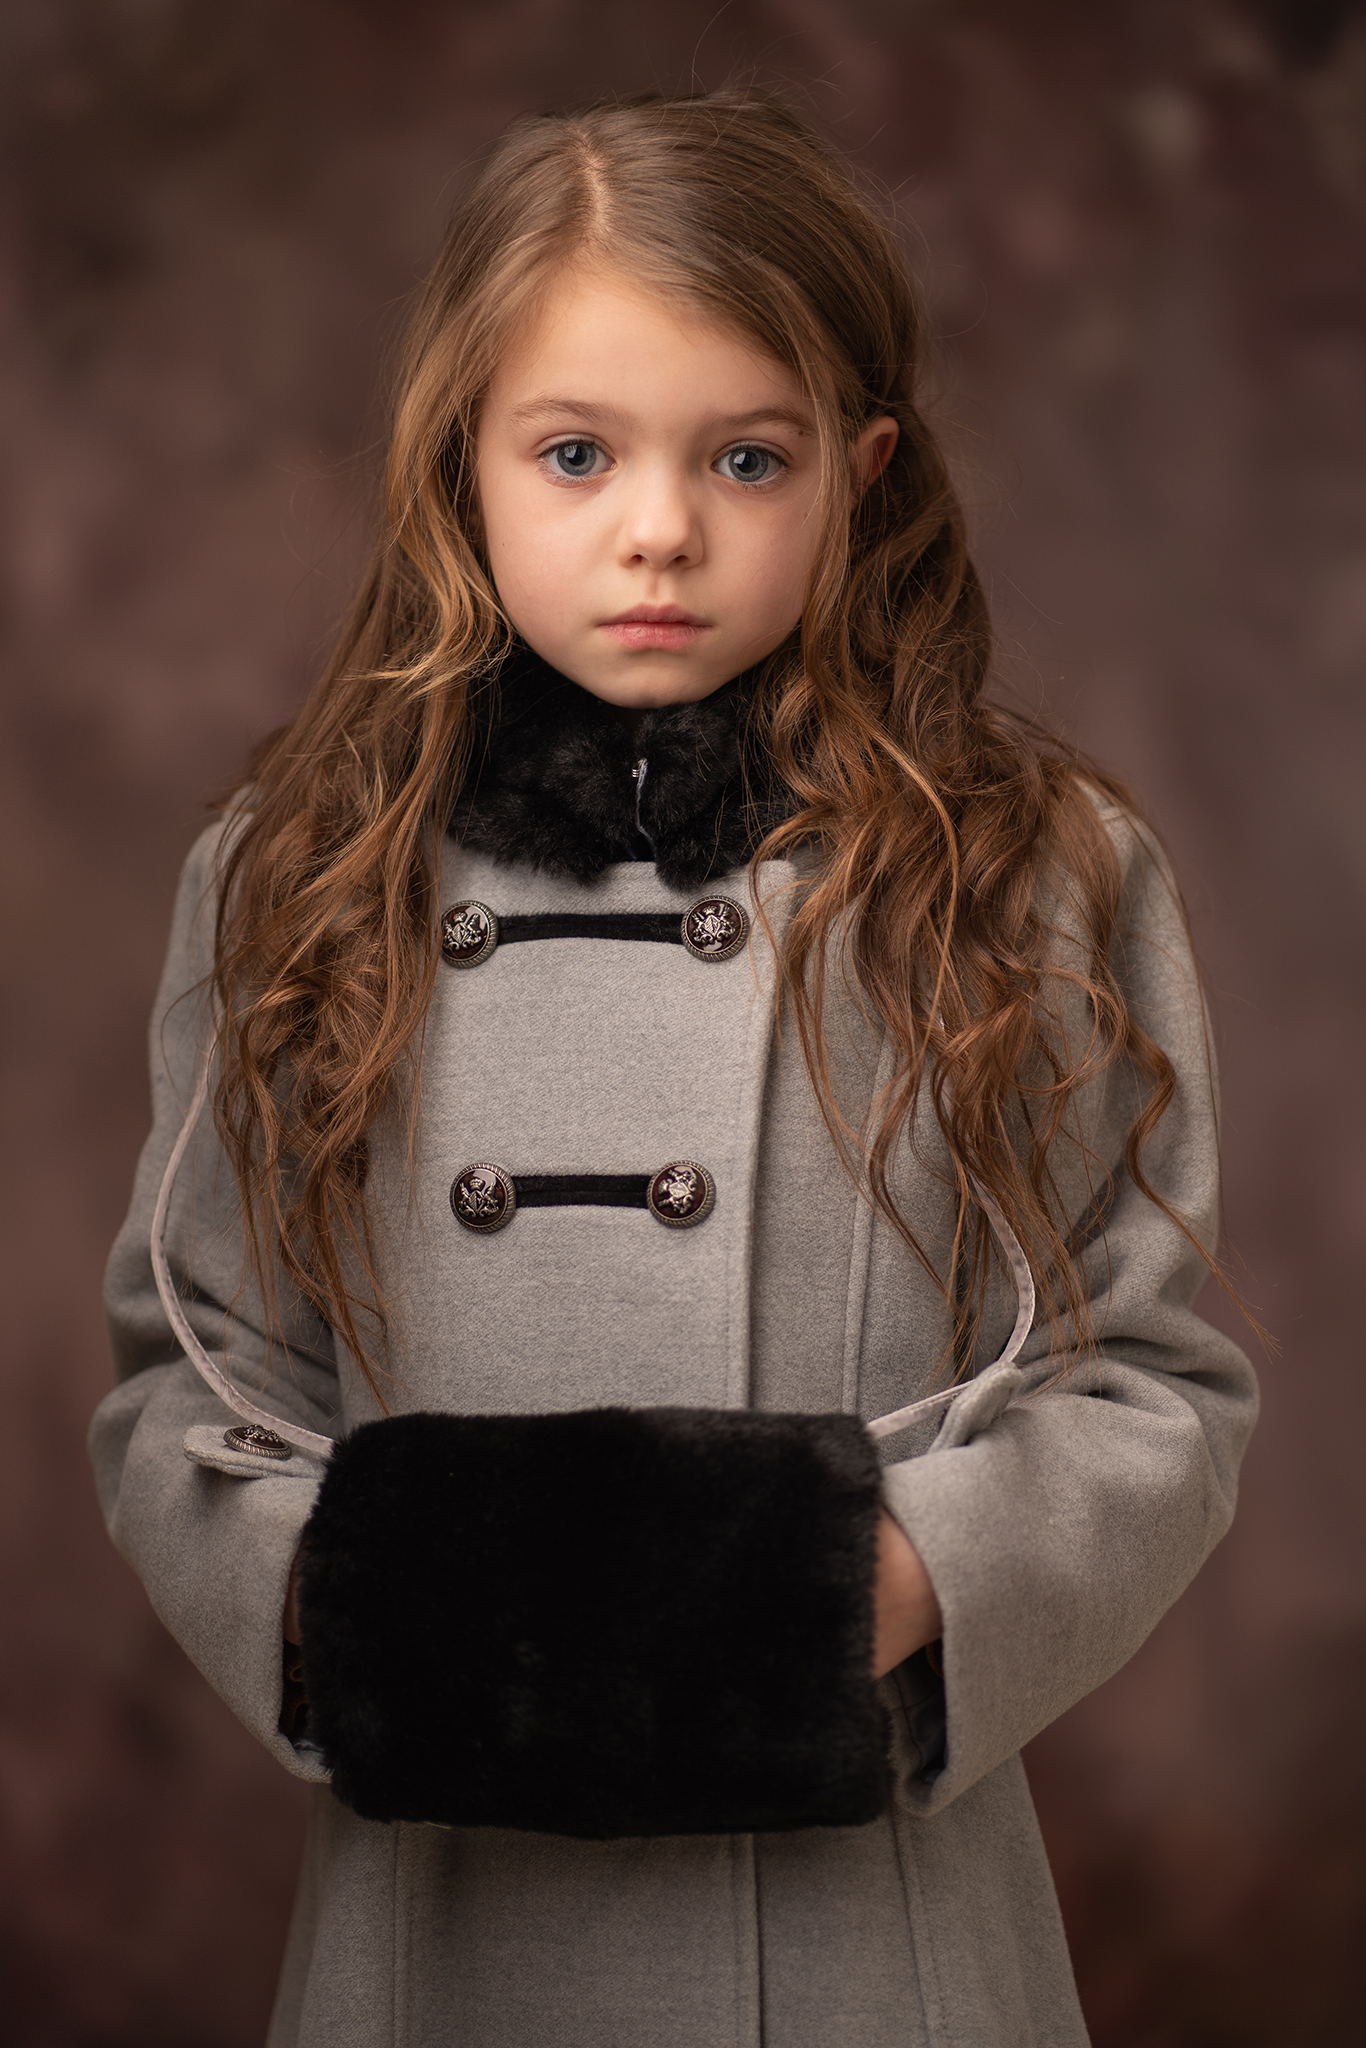 Child model portfolio portrait in studio by Portrait photographer Preston